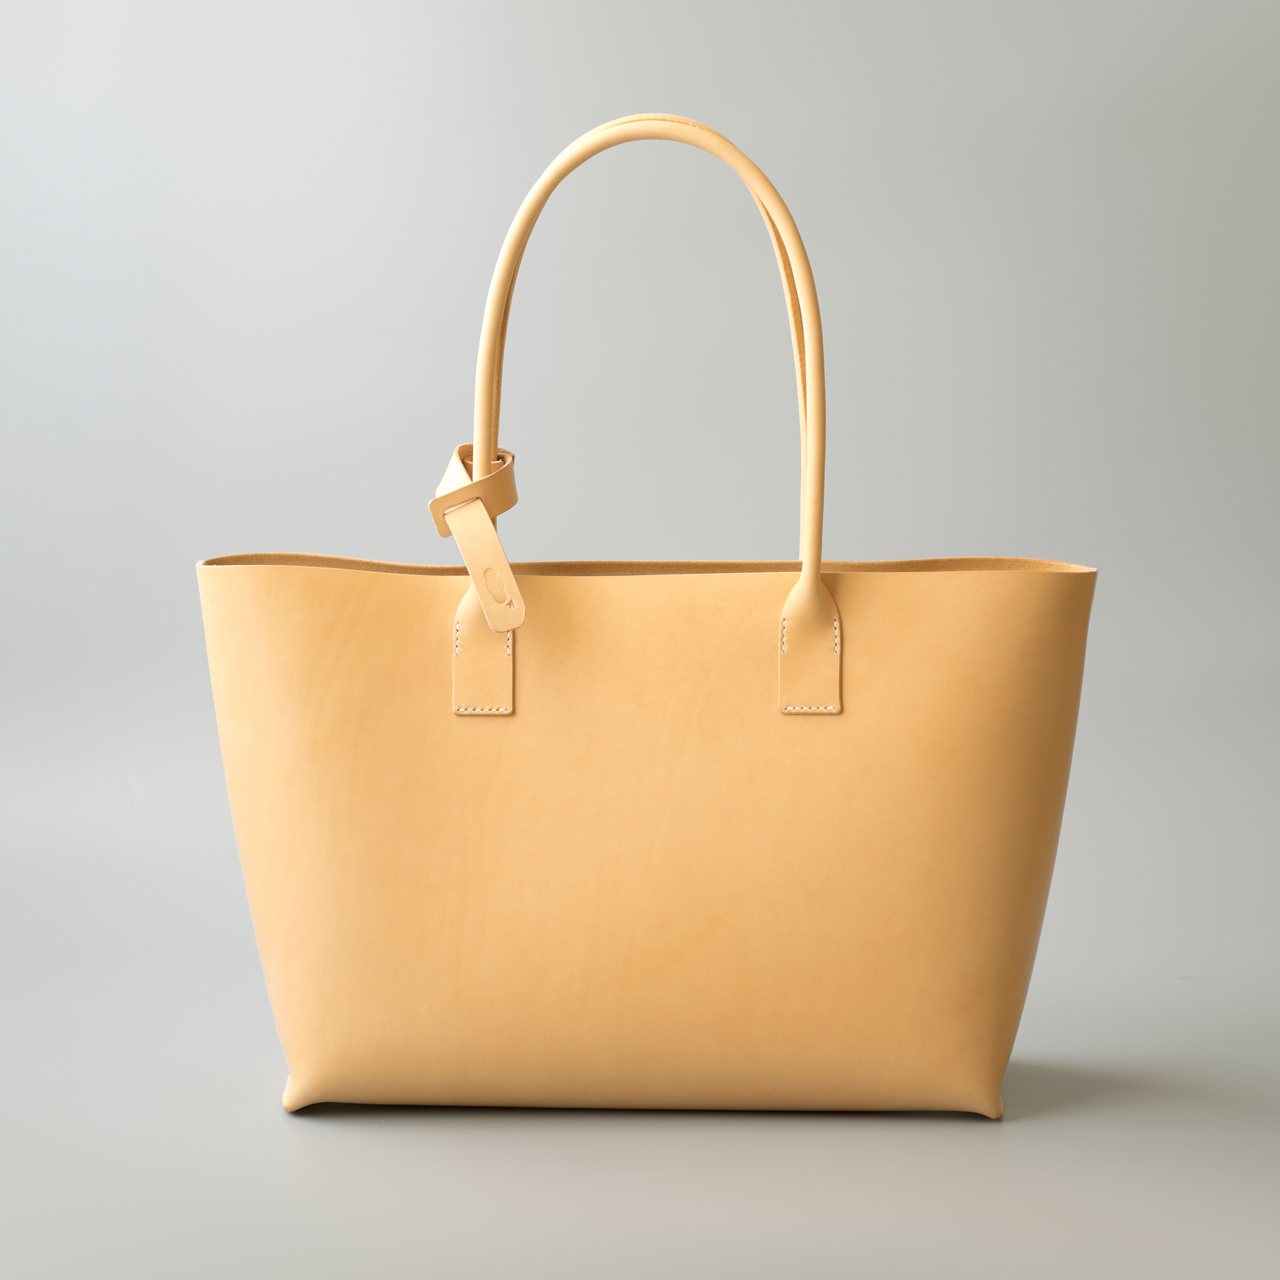 kumosha hand stitched leather tote bag type02